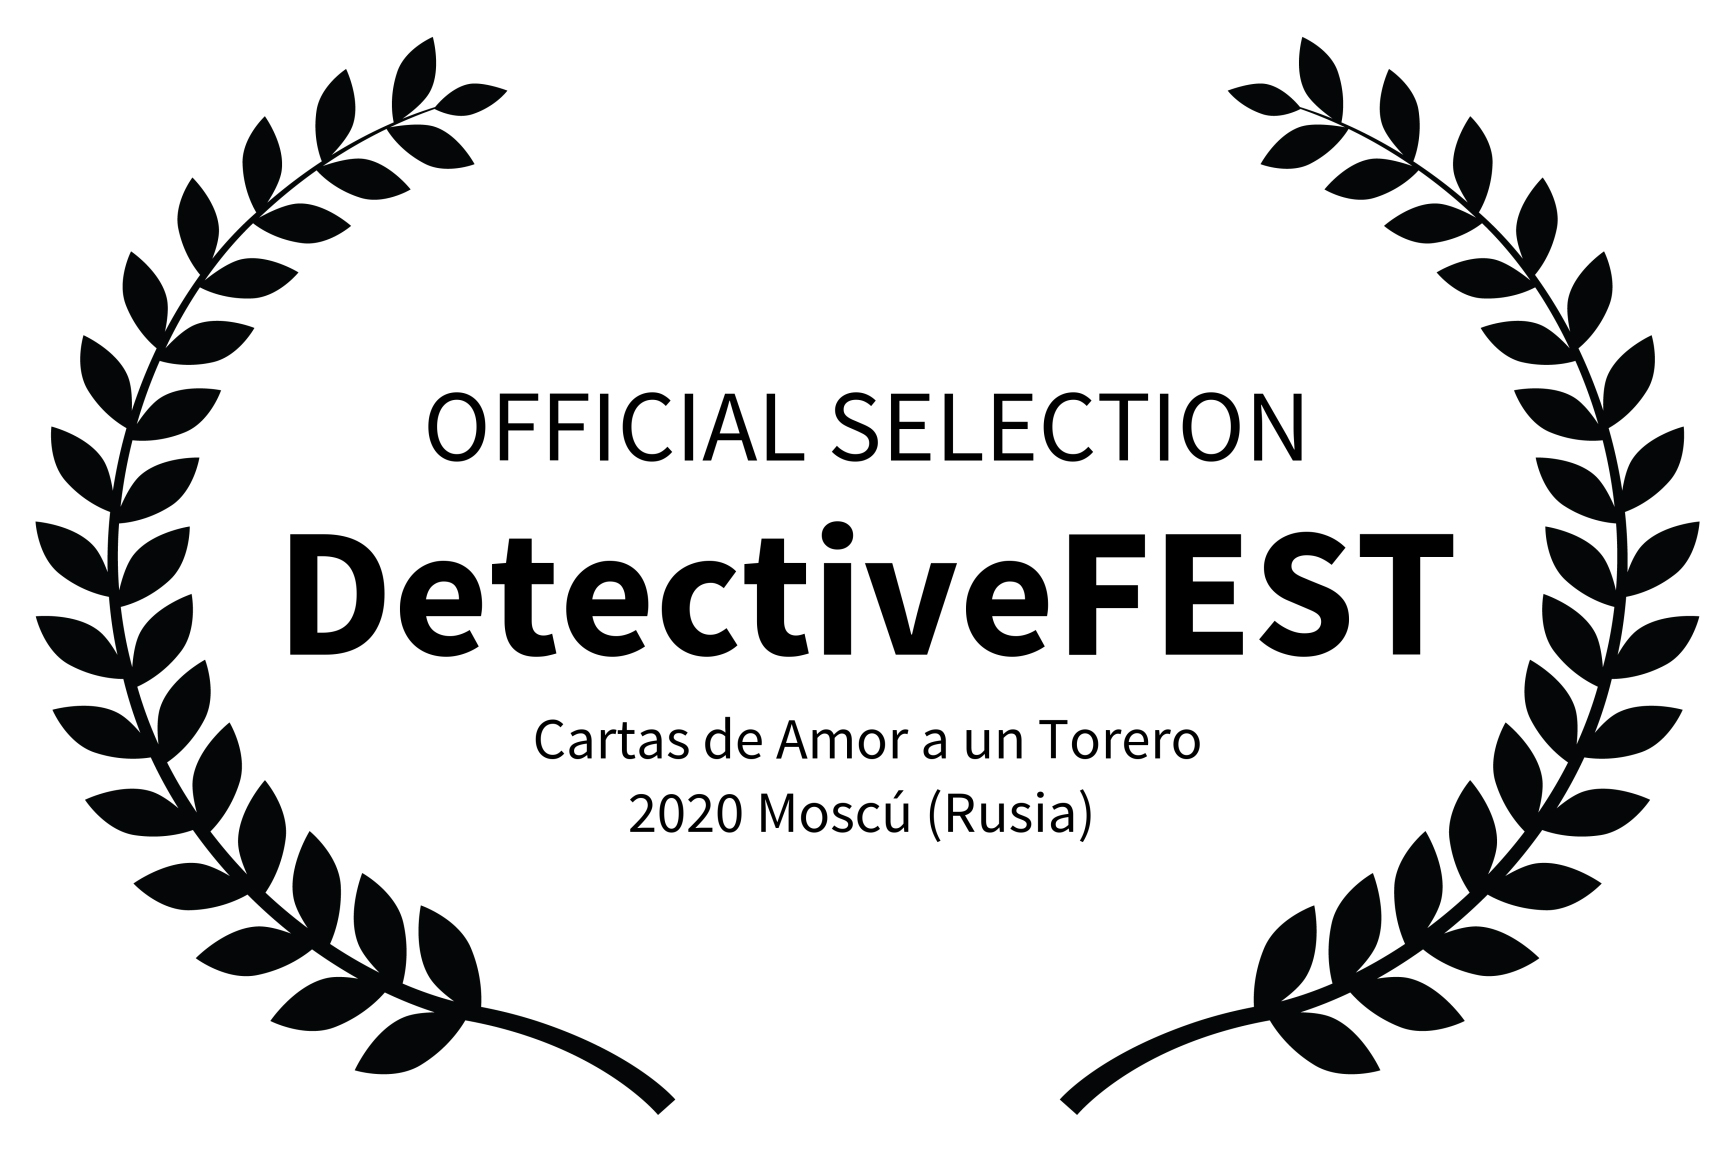 OFFICIAL SELECTION - DetectiveFEST  - Ca